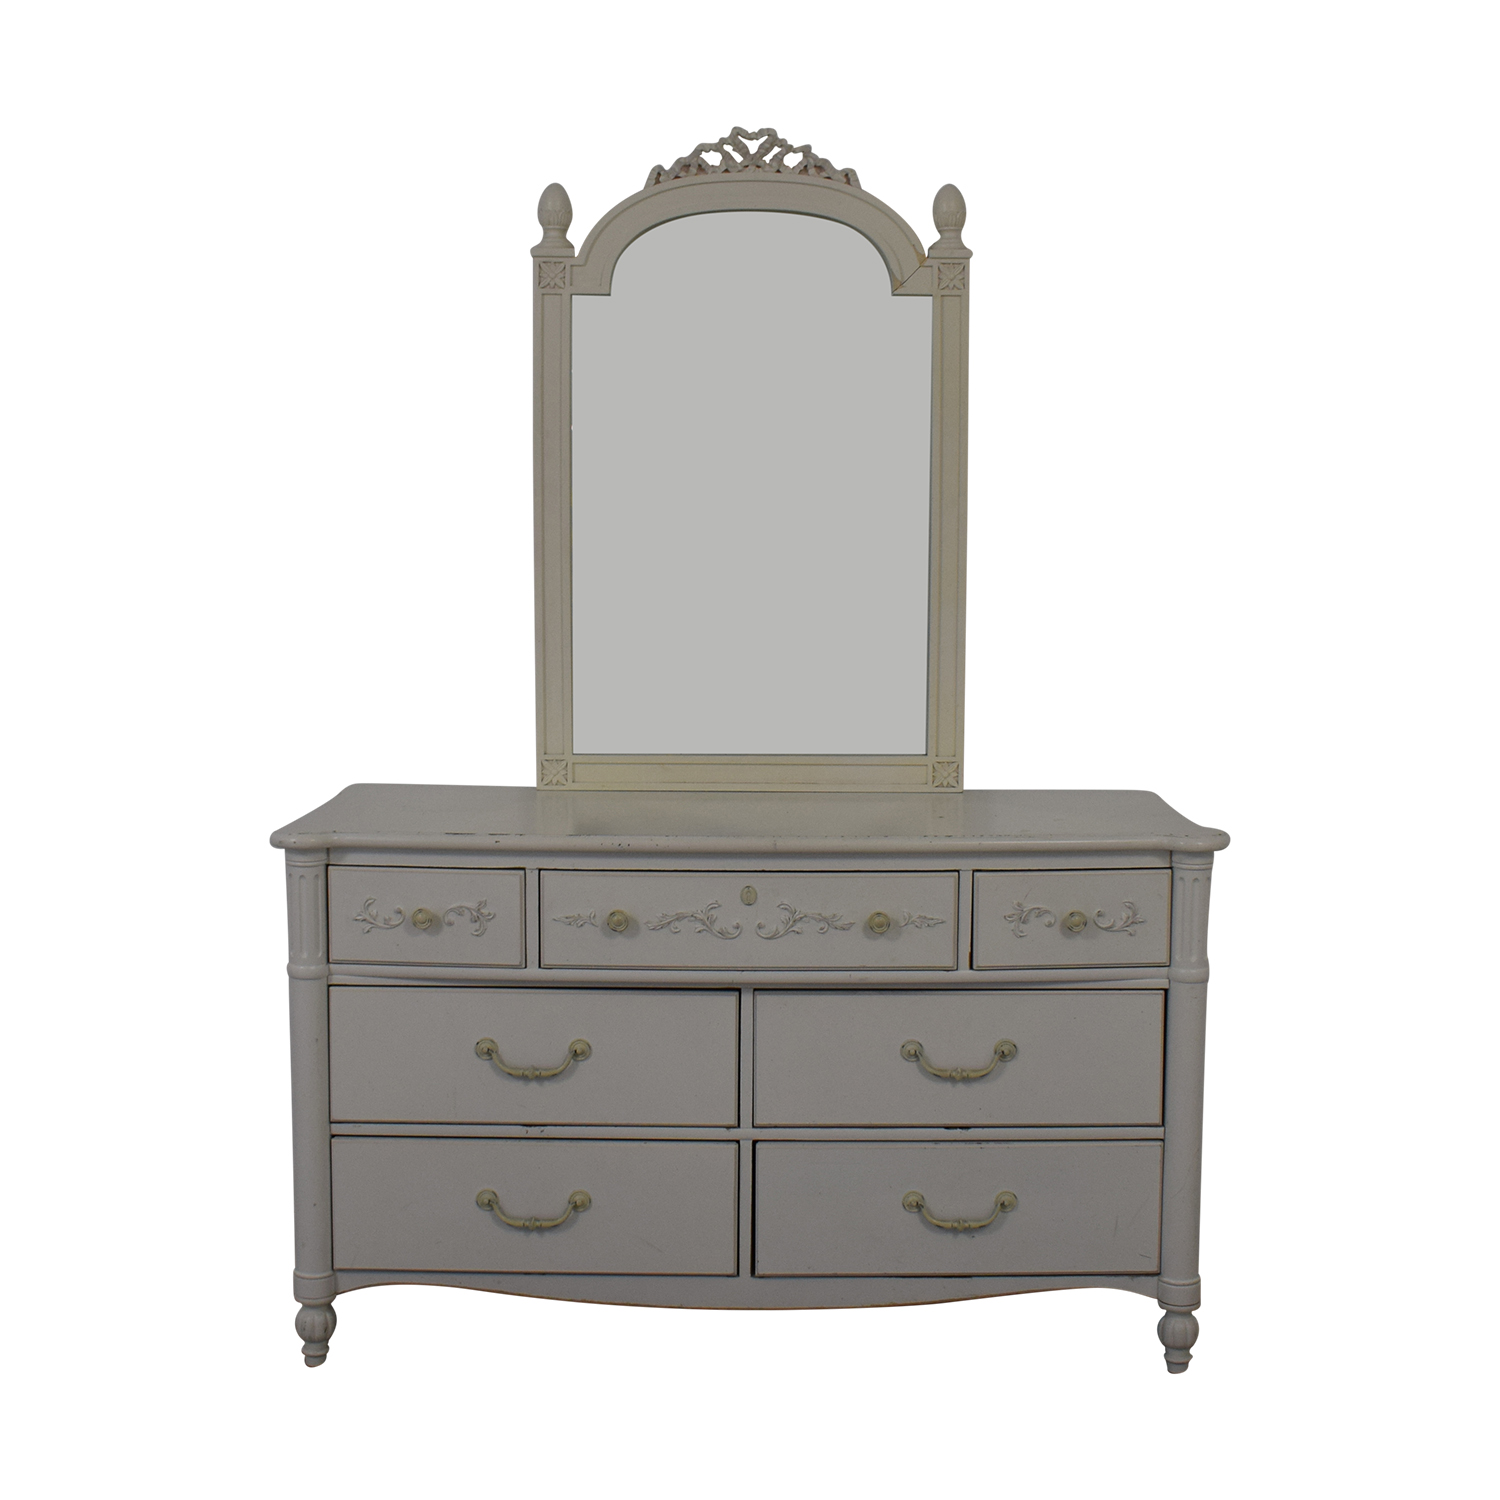 Stanley Furniture Stanley Furniture Seven Drawer Dresser With Mirror Dressers